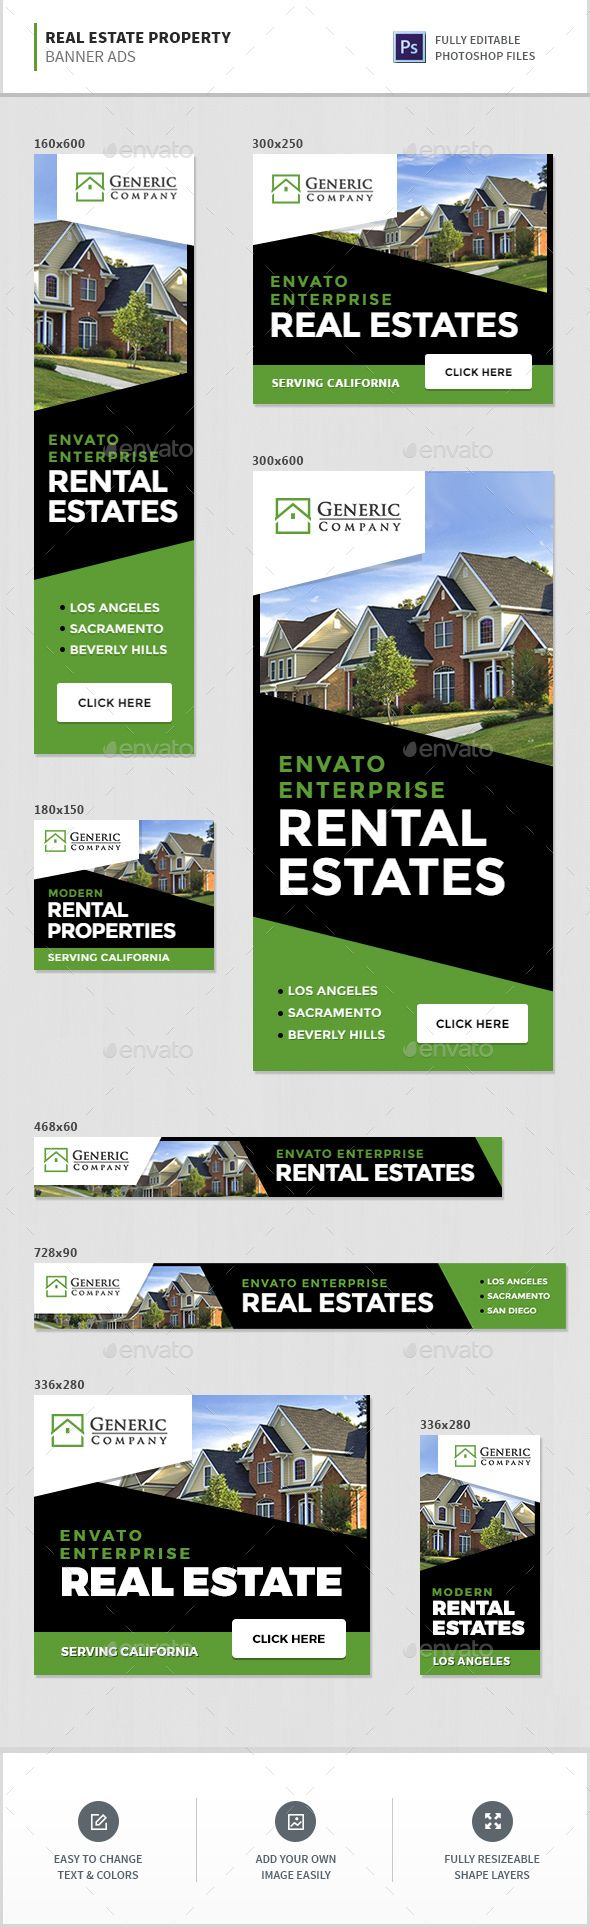 Real Estate Property Banner Ads | Banners